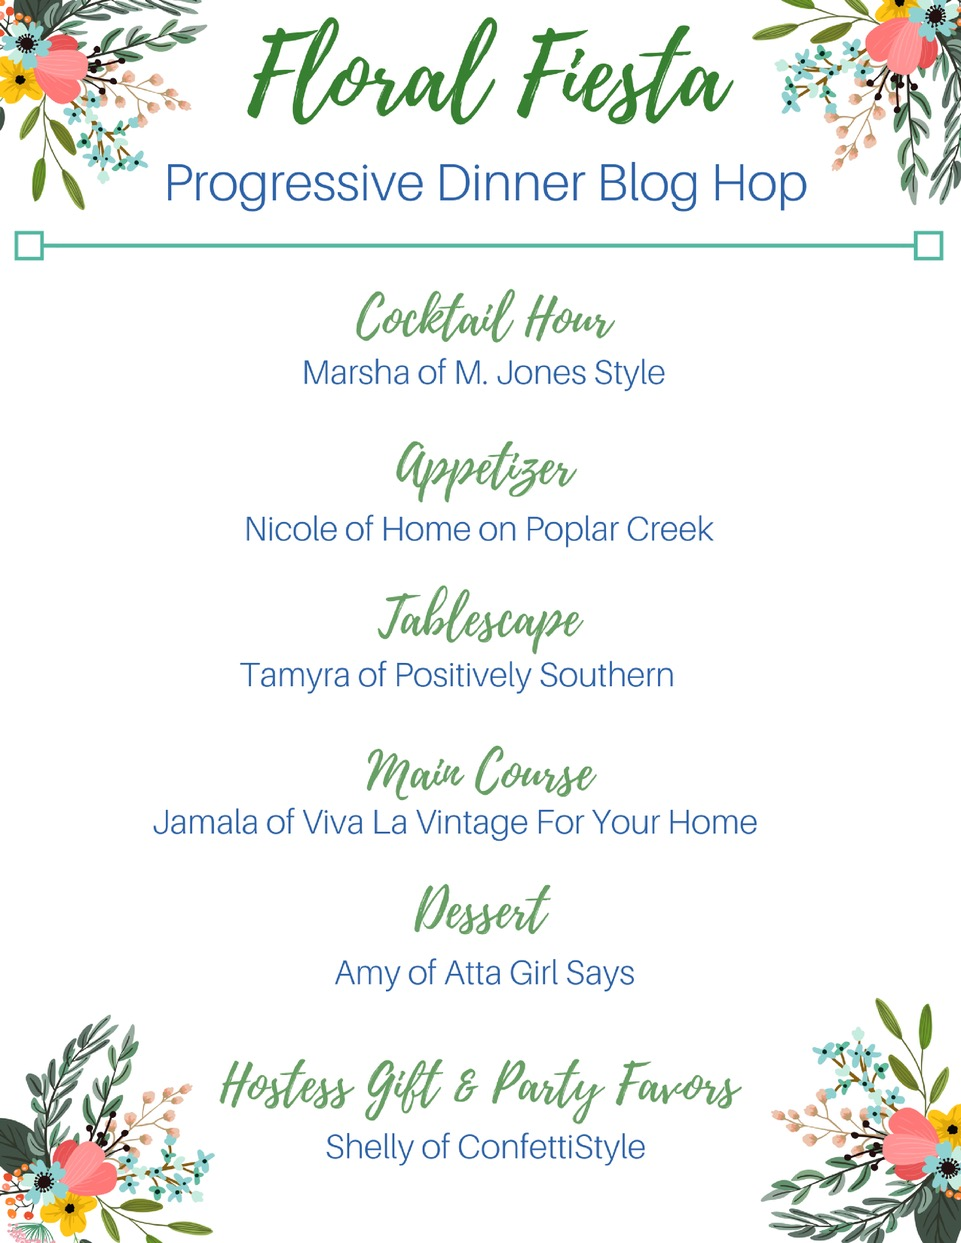 Join six bloggers for a (virtual) progressive dinner party. Visit each blog for cocktails, appetizer, entree and dessert recipes for our Spring Floral Fiesta. You'll also find ideas for tablescapes, hostess gifts and party favors. #SpringSoiree #SpringSoireeBlogHop #progressivedinner